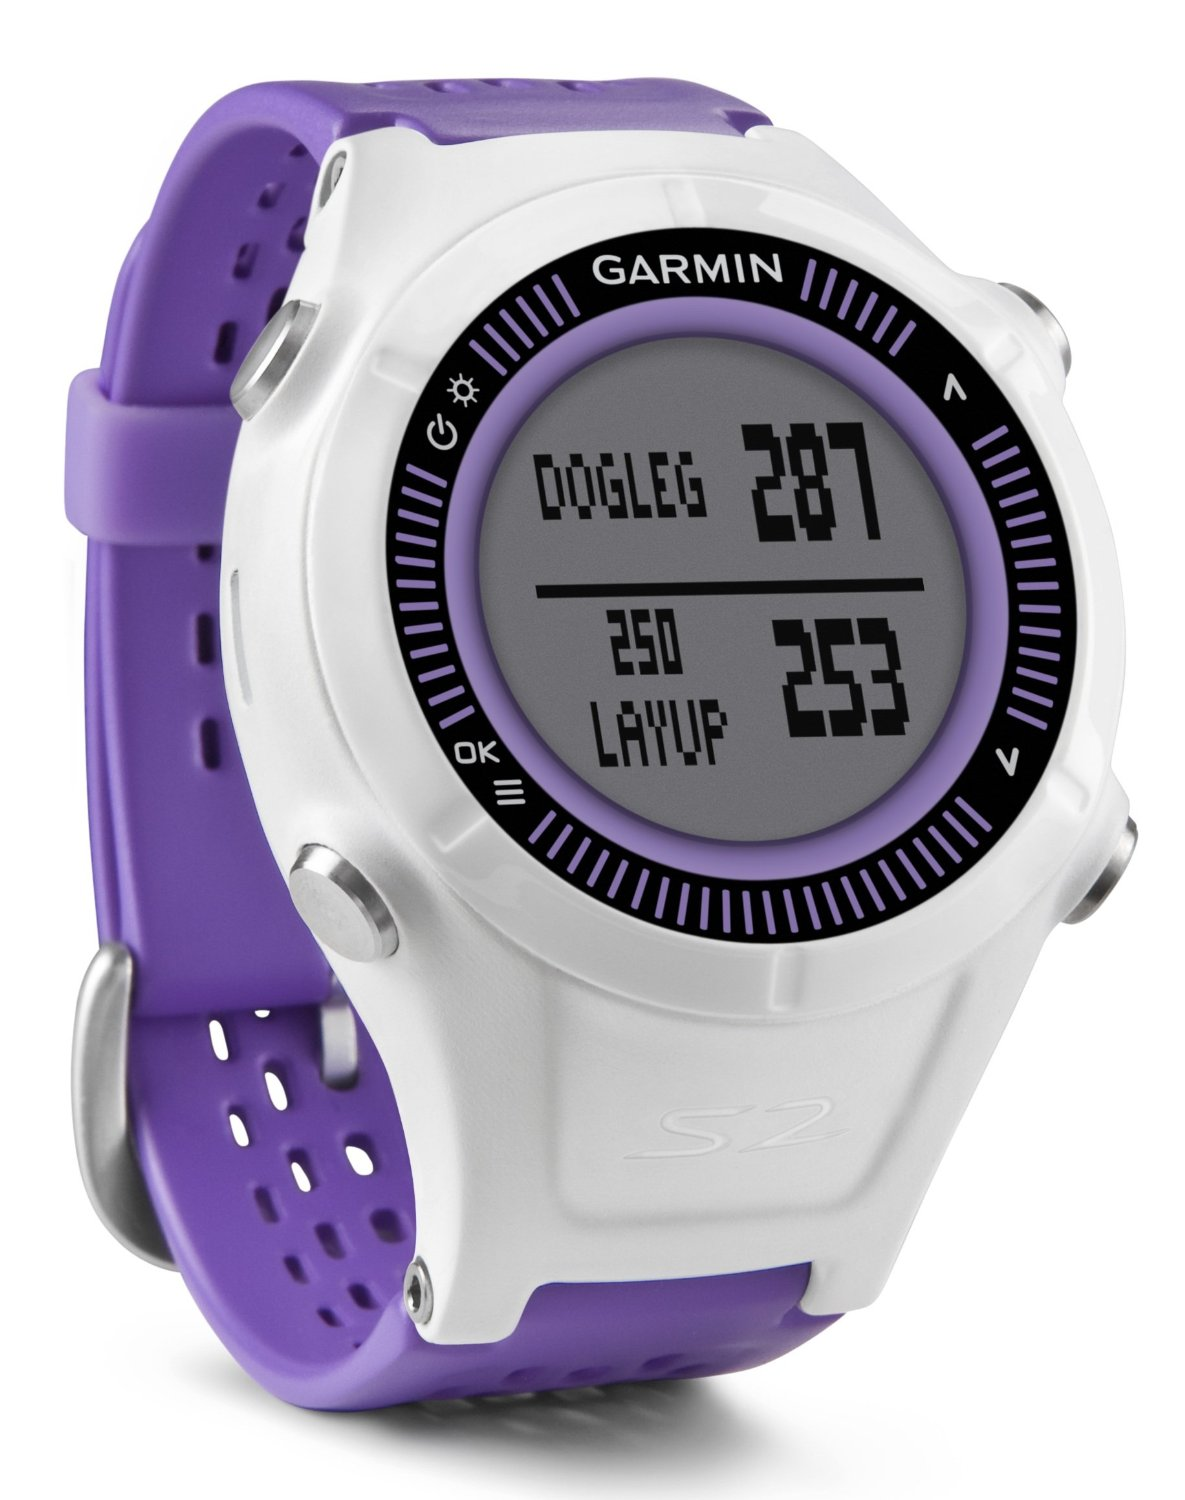 garmin approche s2 golf gps t l m tre montre violet 38000 ds le monde entier ebay. Black Bedroom Furniture Sets. Home Design Ideas